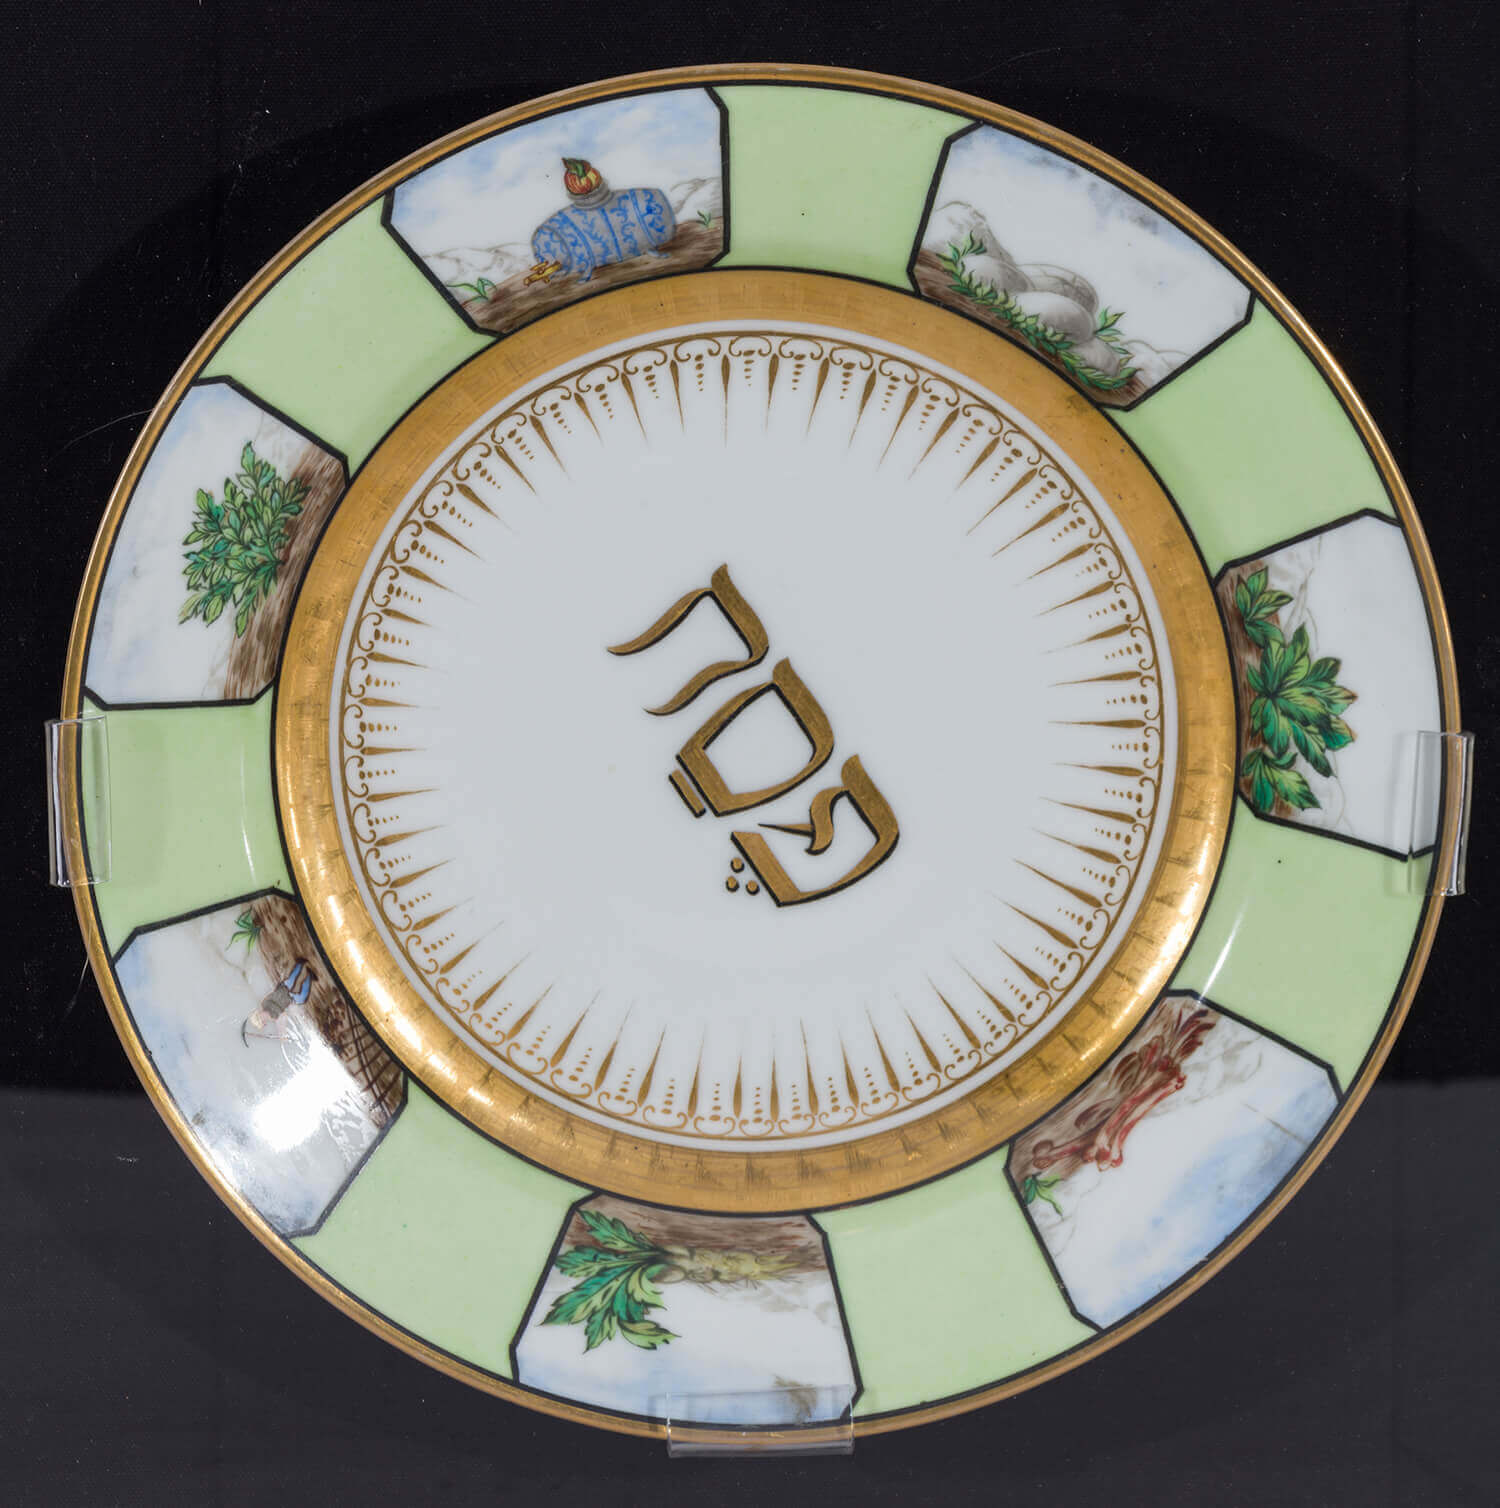 109. A HAND PAINTED PORCELAIN PASSOVER PLATE